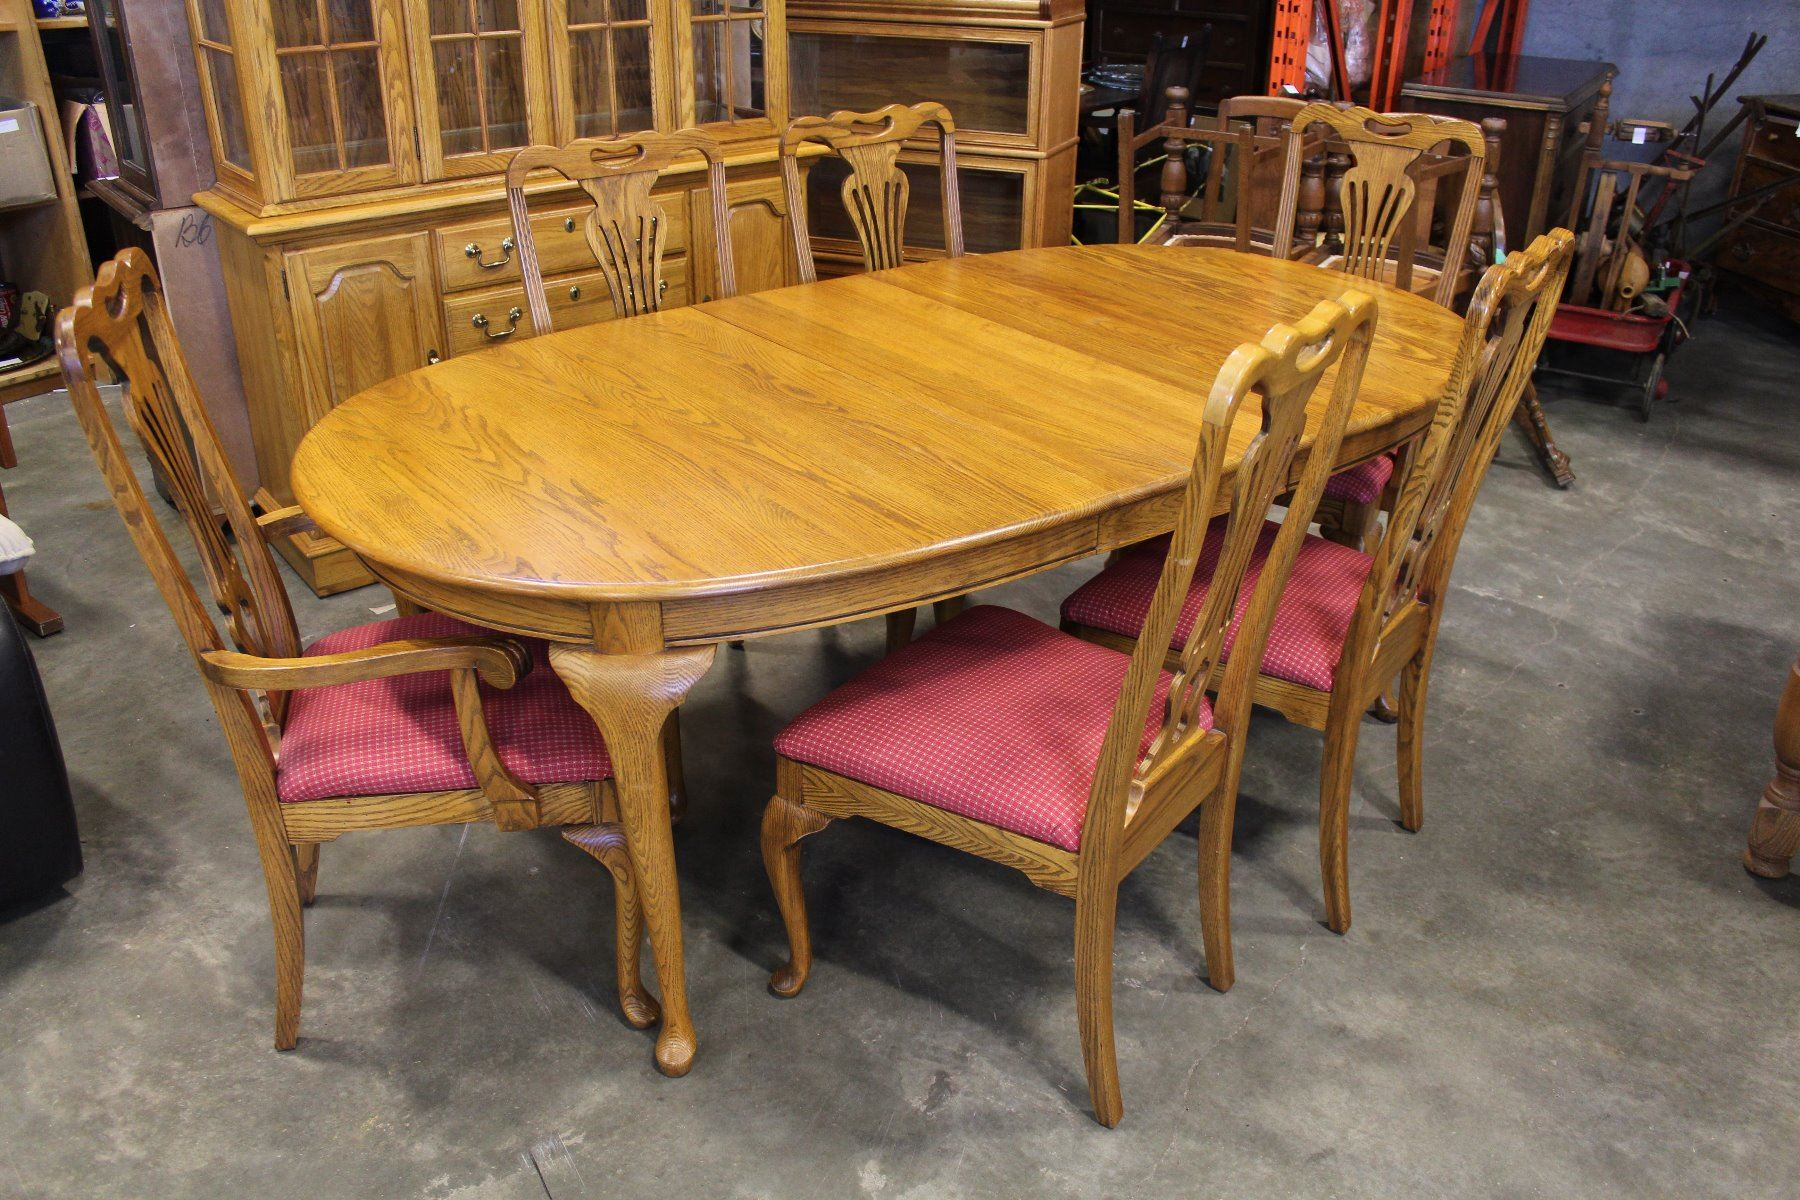 Image 1 JAMESTOWN STERLING SOLID OAK DINING TABLE W LEAFS 6 CHAIRS INCLUDING